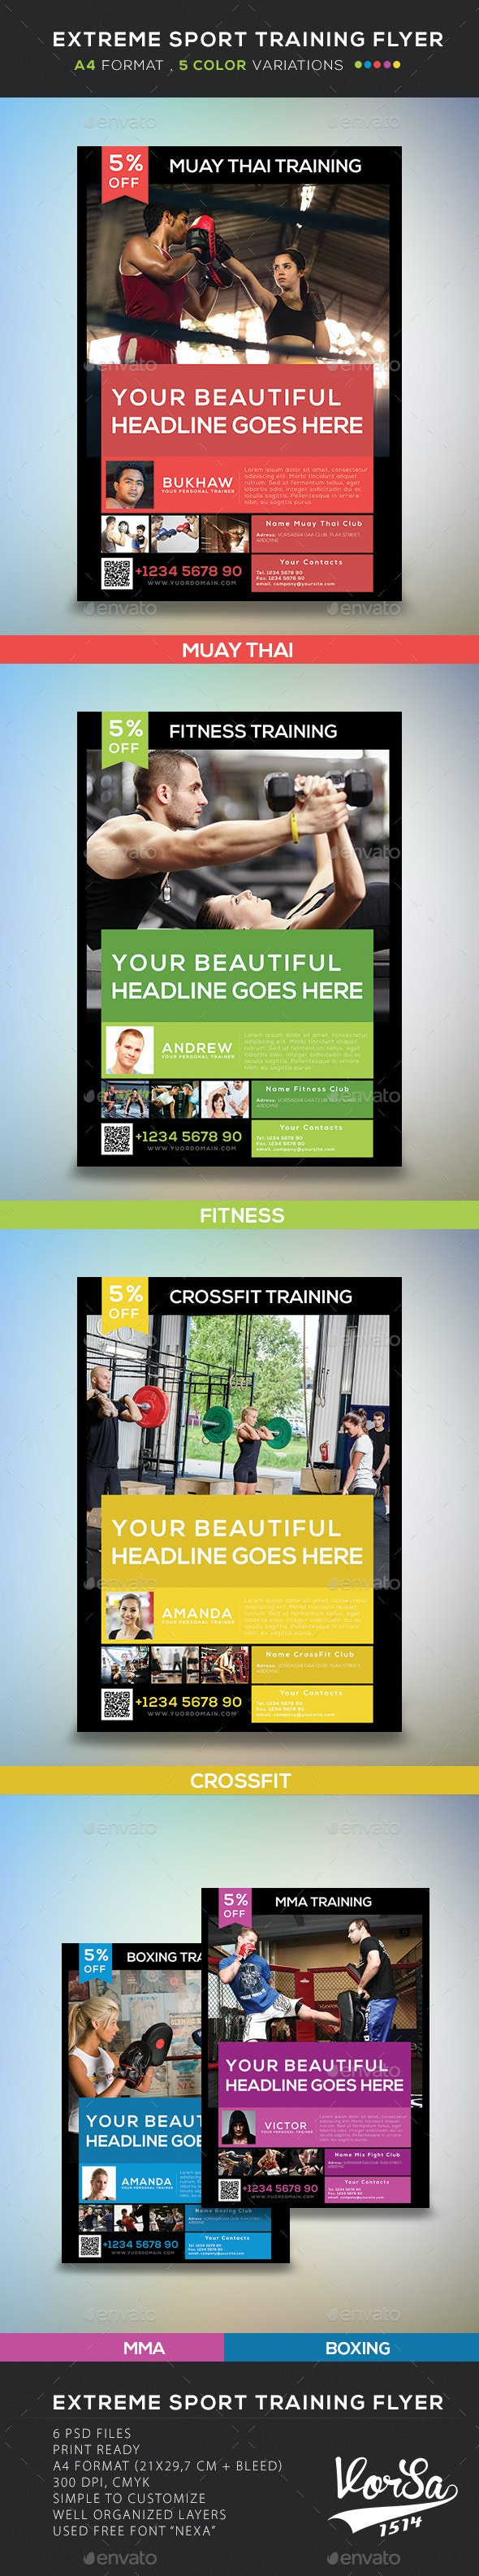 Extreme Sport Training Flyer - Corporate Flyers